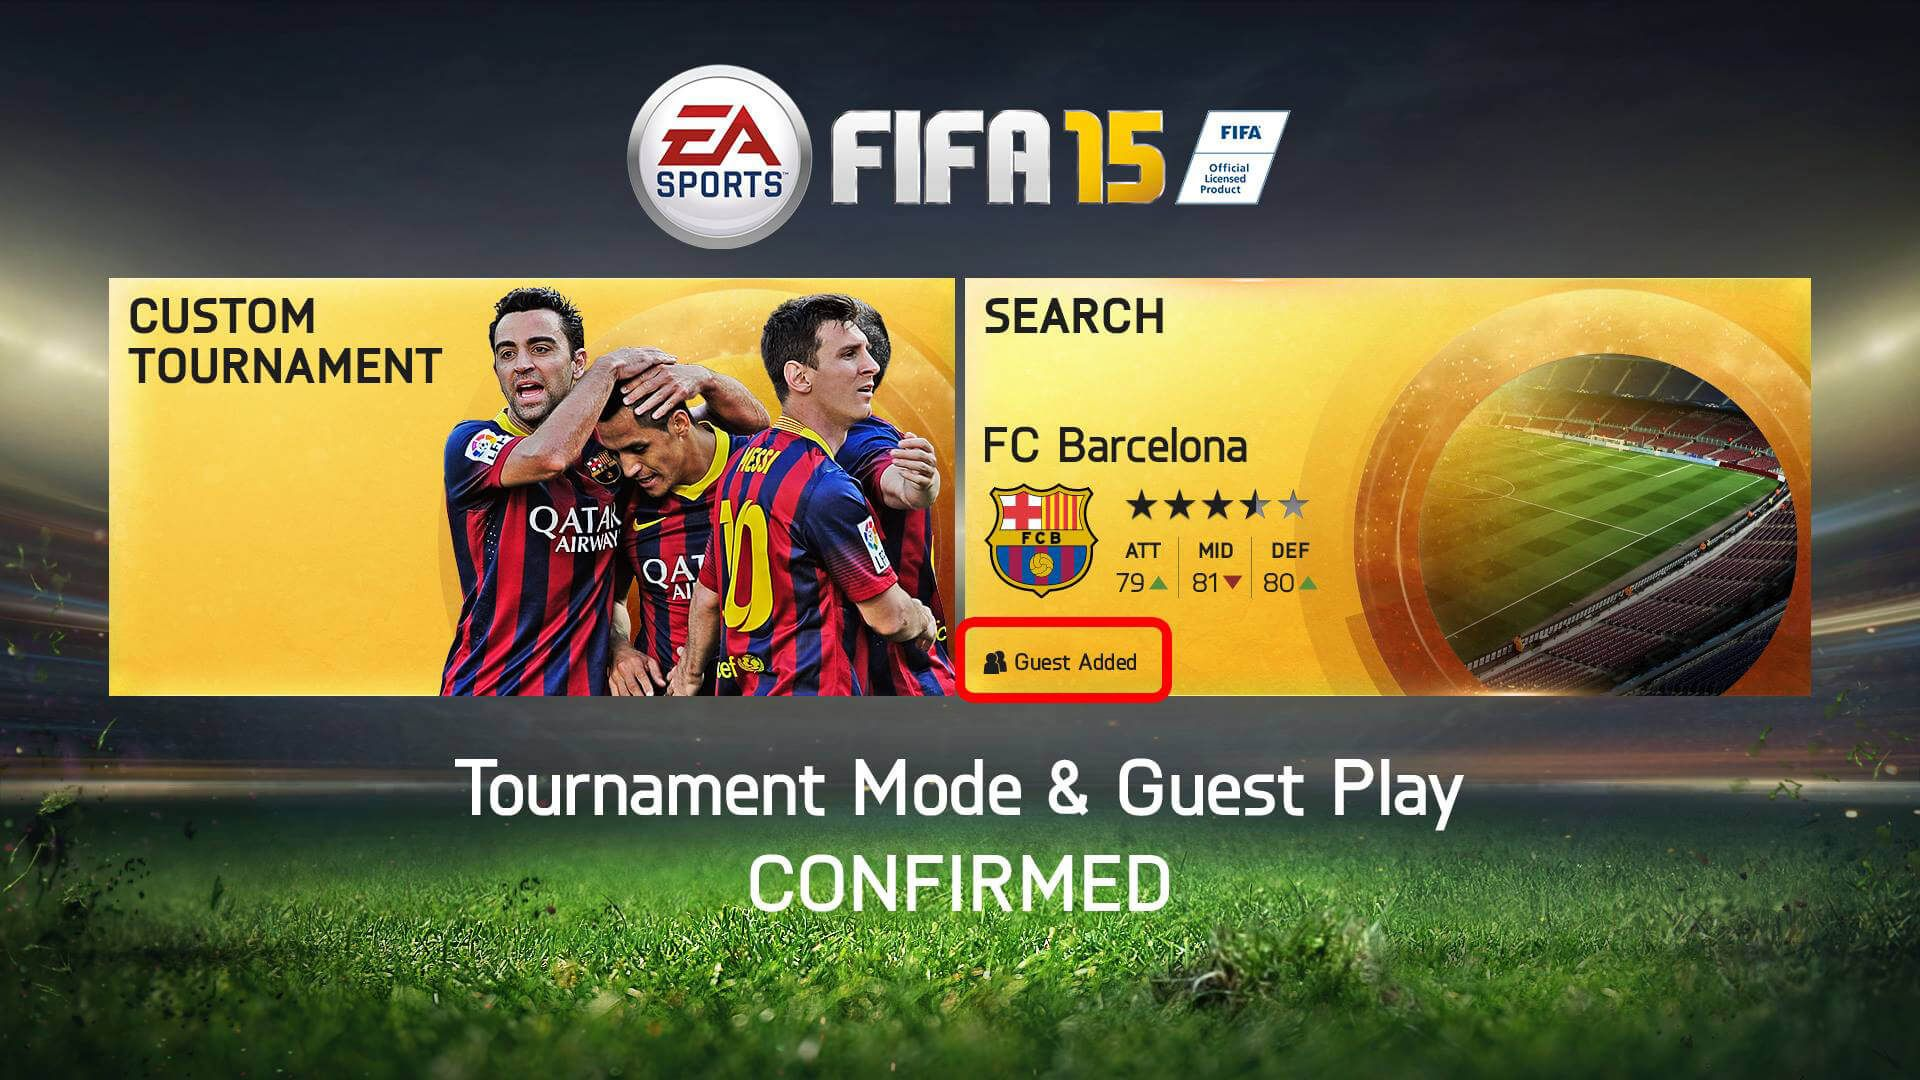 Fifa 15 bitcoins to dollars pro football betting strategies for roulette